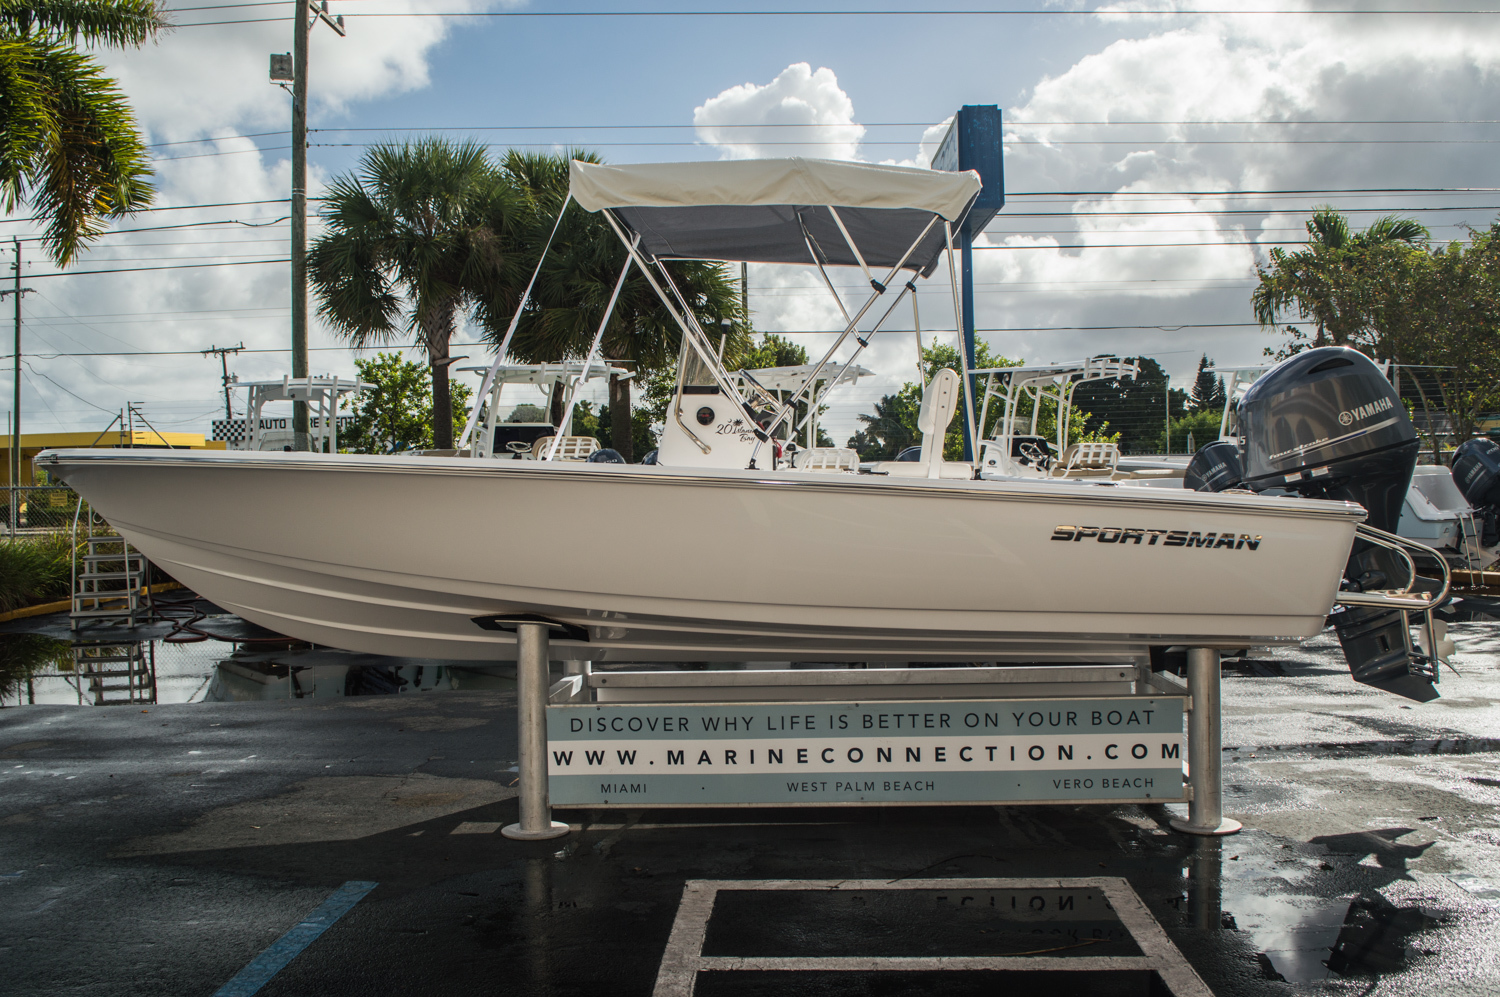 Thumbnail 4 for New 2016 Sportsman 20 Island Bay boat for sale in West Palm Beach, FL